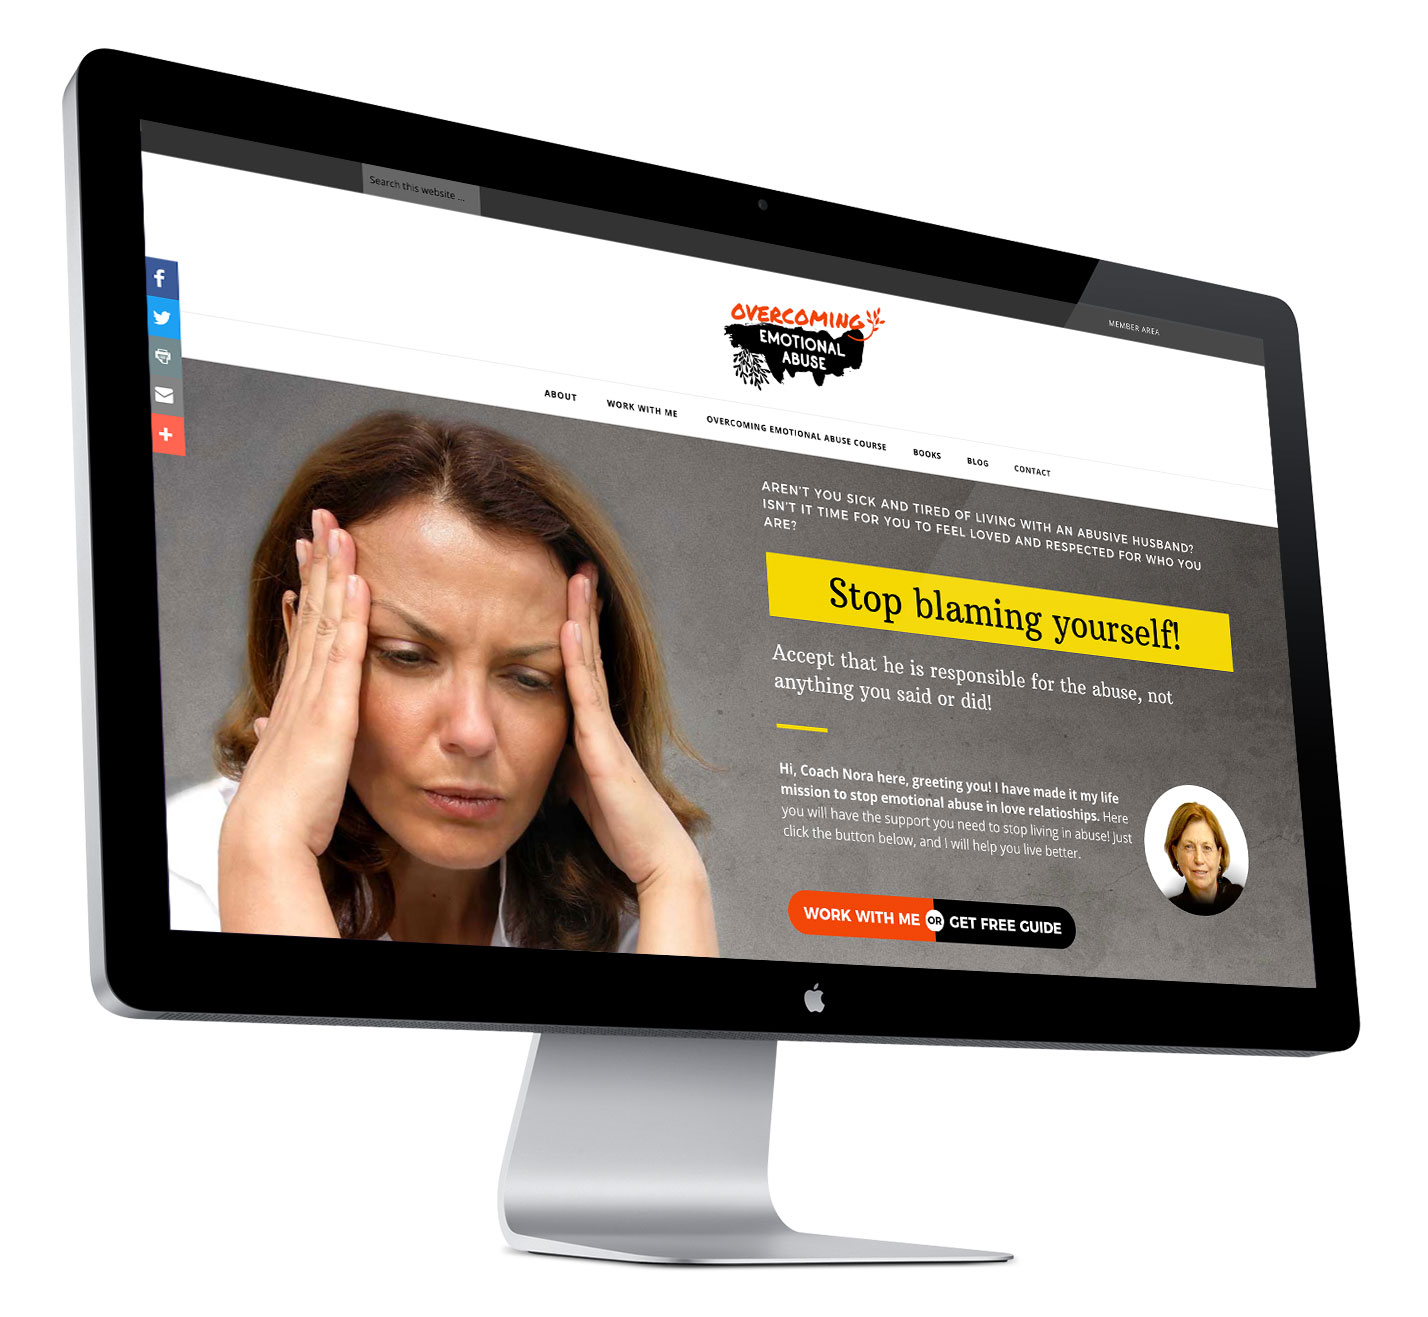 overcoming-emotional-abuse-homepage-imac